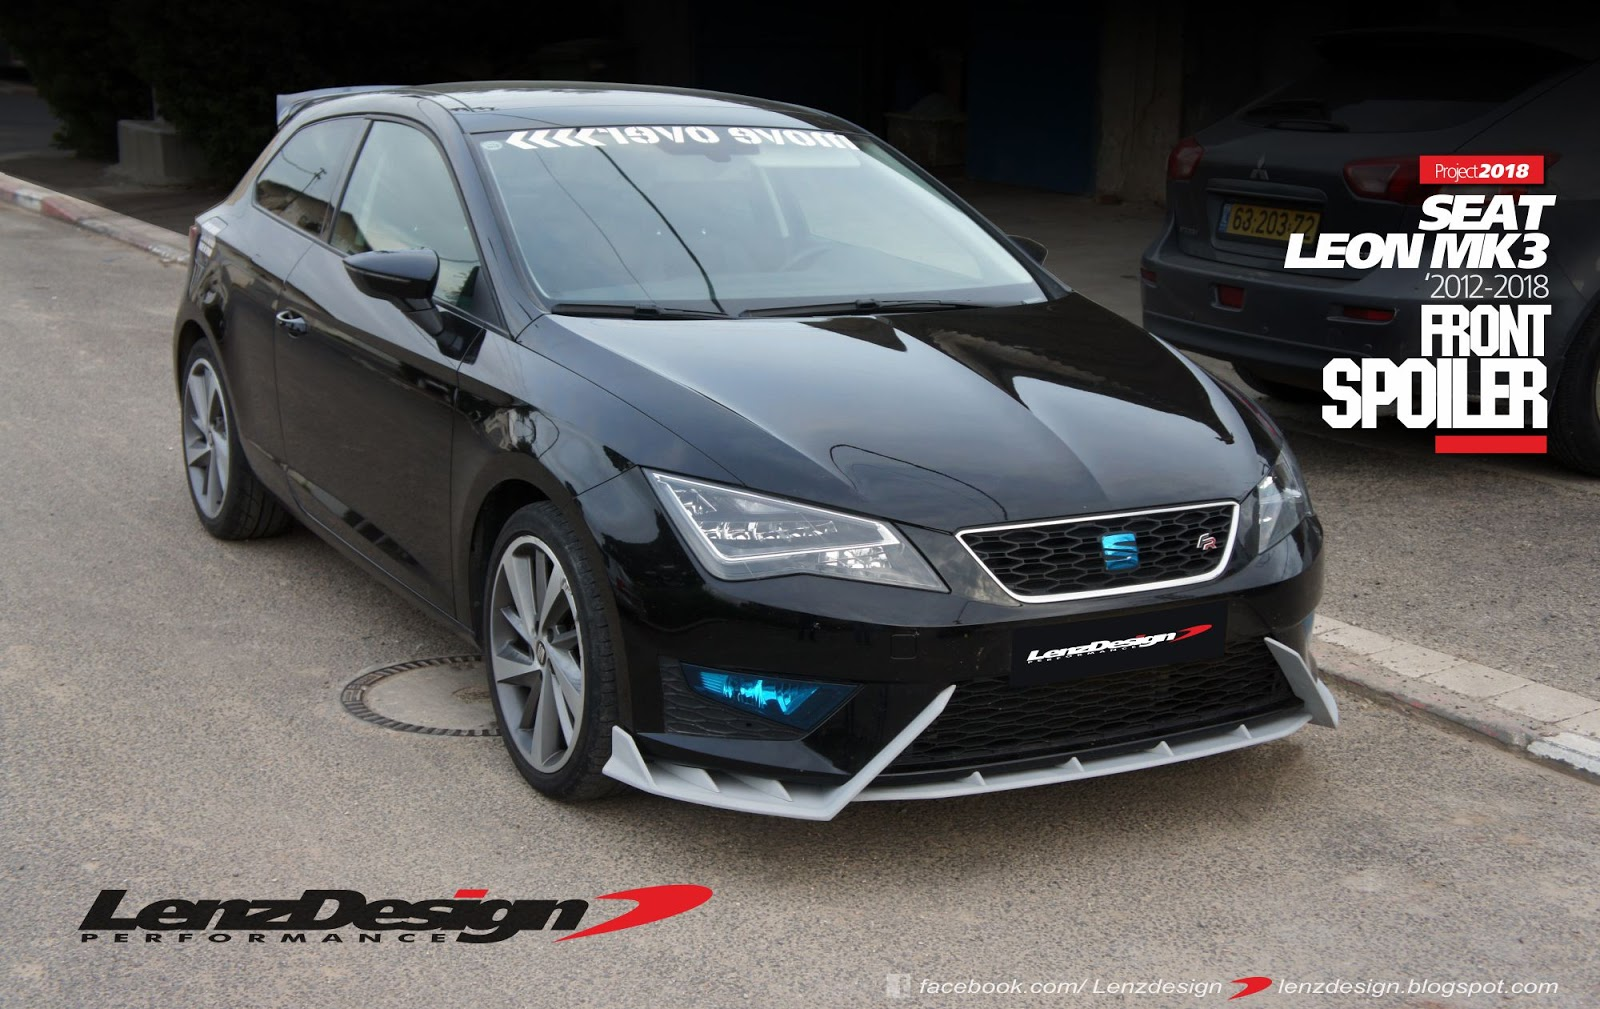 seat leon mk3 5f lenzdesign body kit spoilers 2012 2013. Black Bedroom Furniture Sets. Home Design Ideas